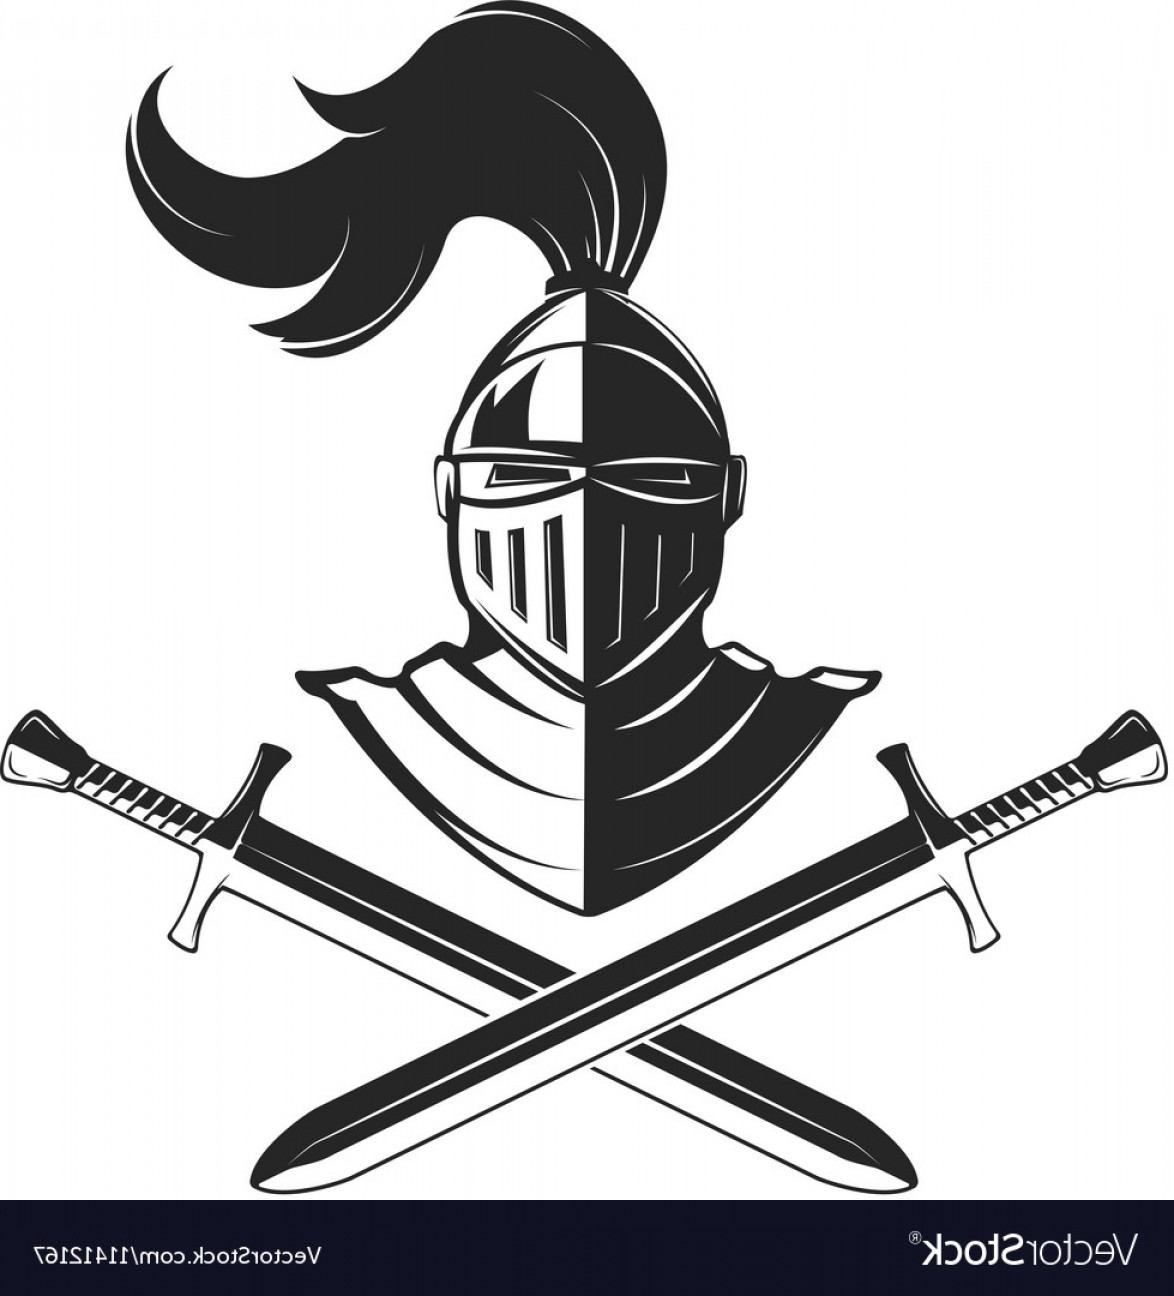 Templar Knight Helmet Vector: Knight Helmet With Two Swords Isolated On White Vector